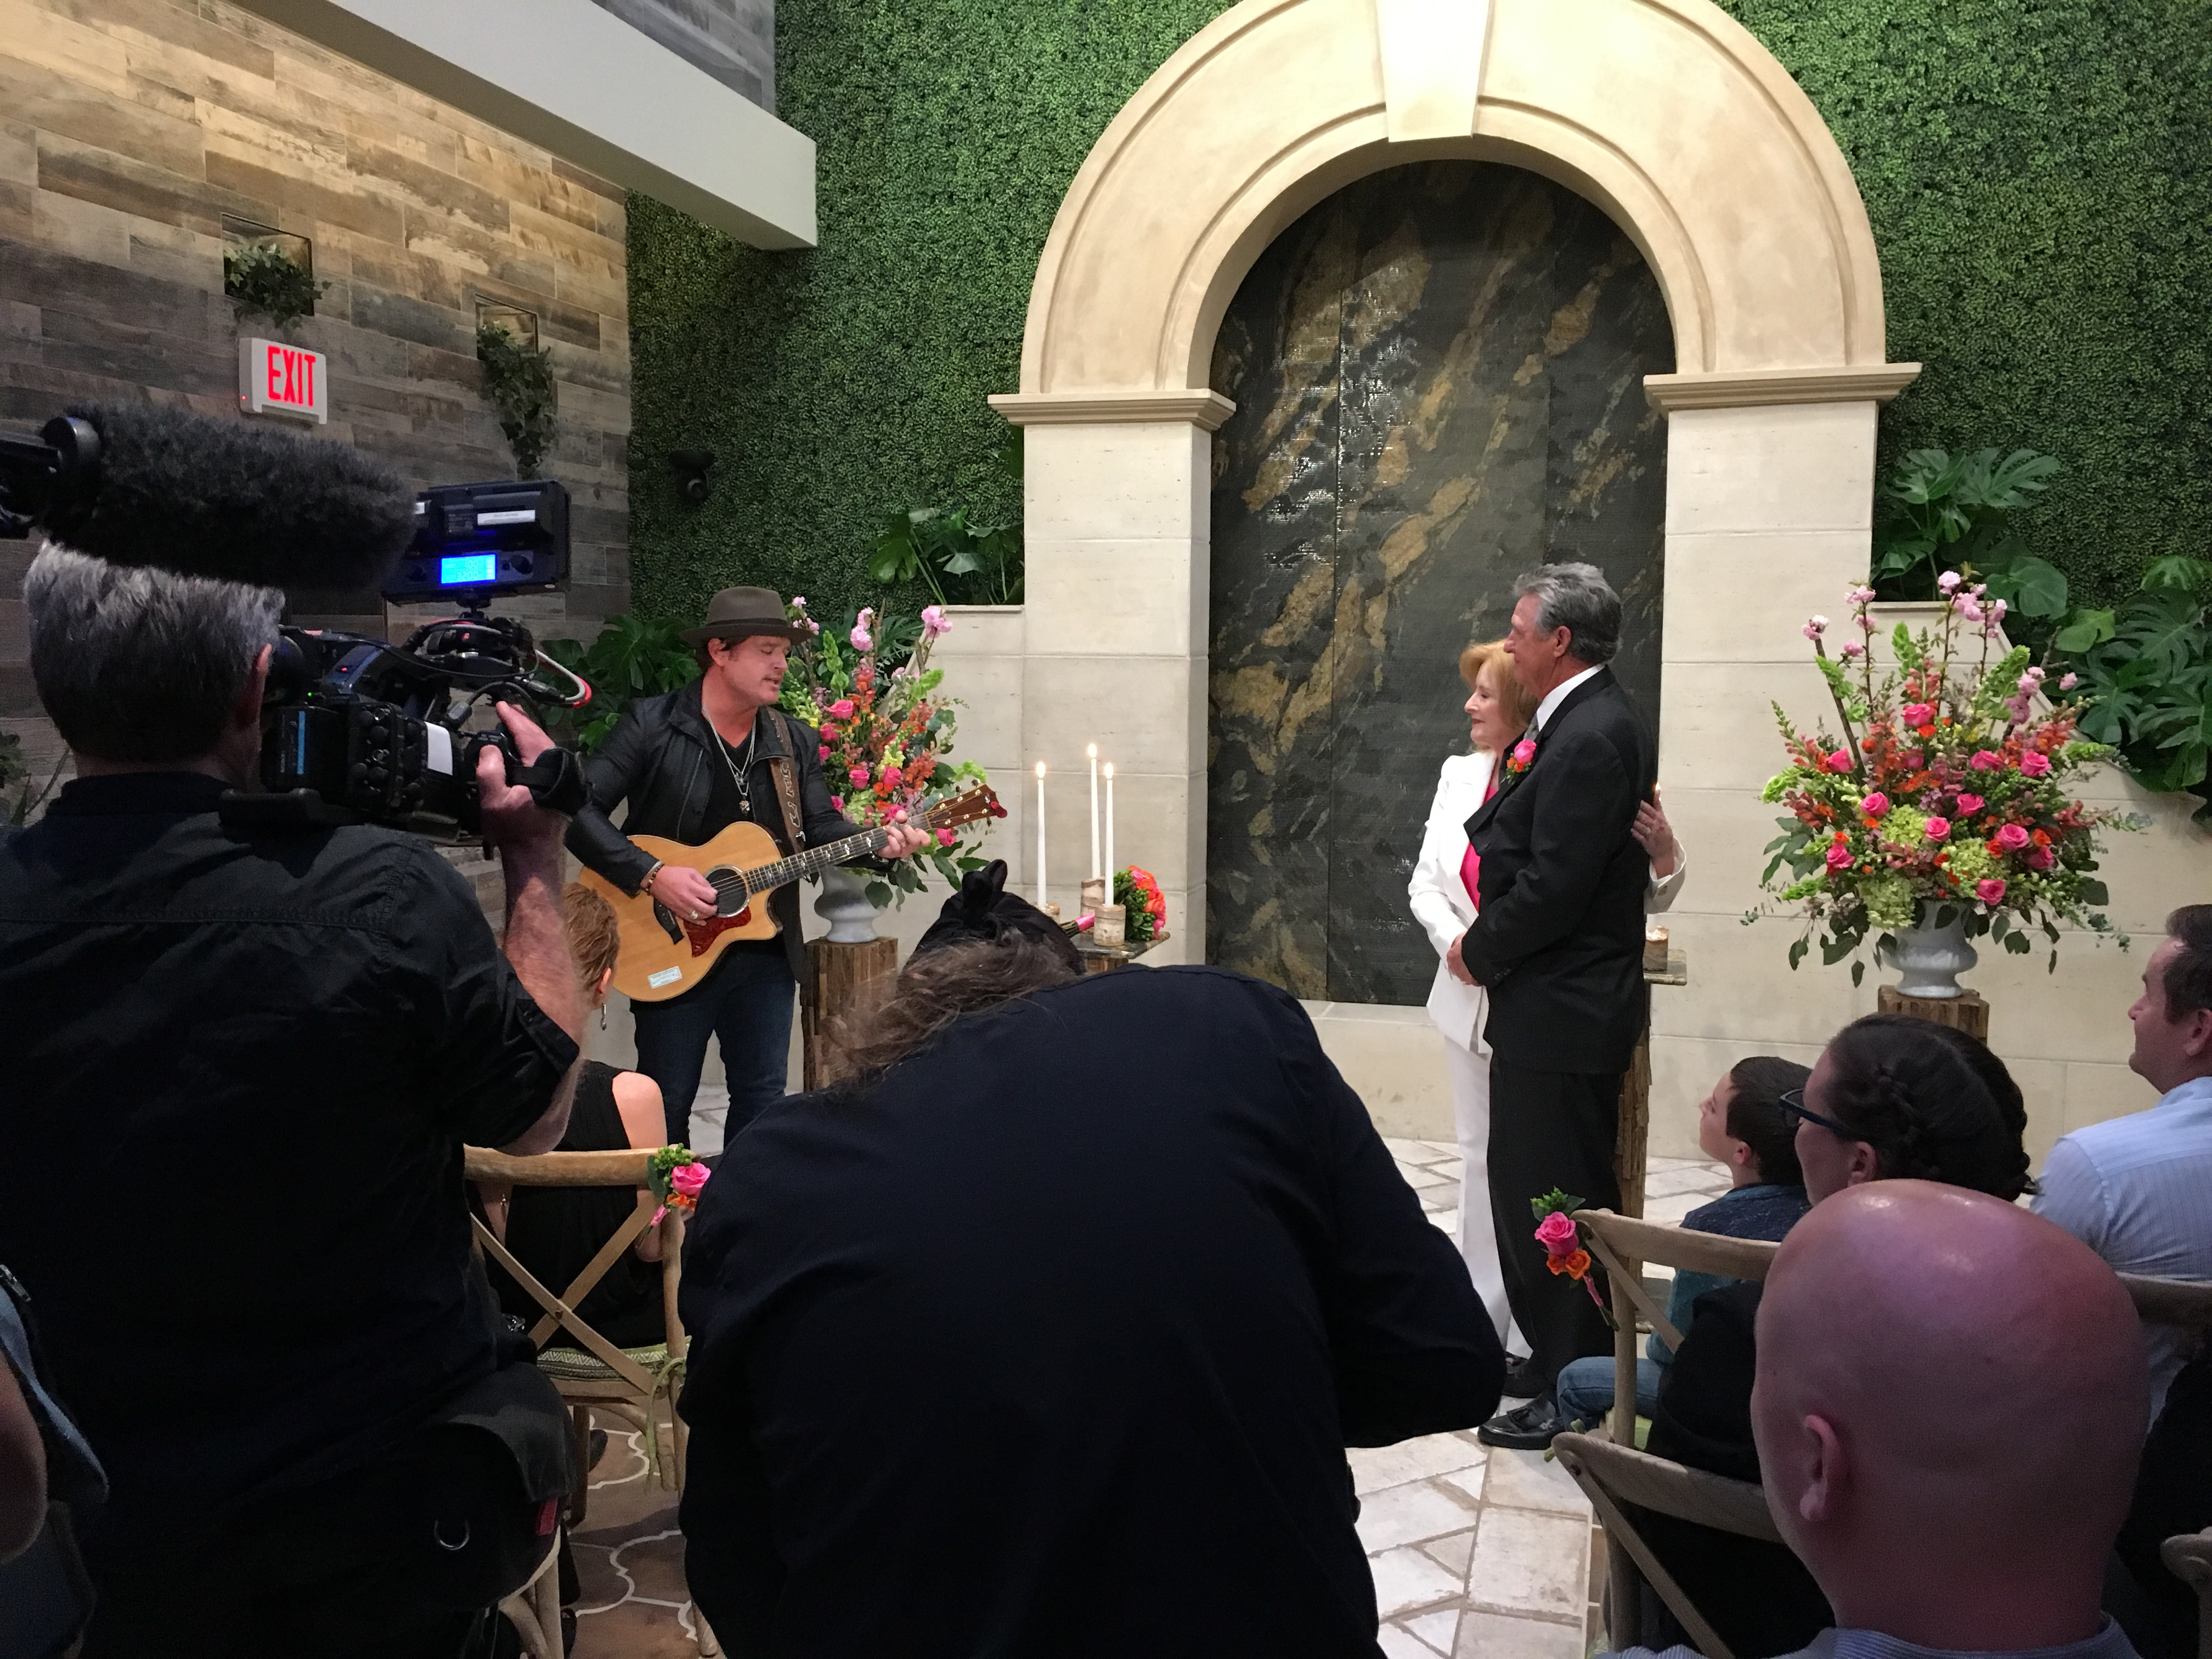 Country Music Star Jerrod Niemann Surprises Couple During Vow Renewal Ceremony At Chapel Of The